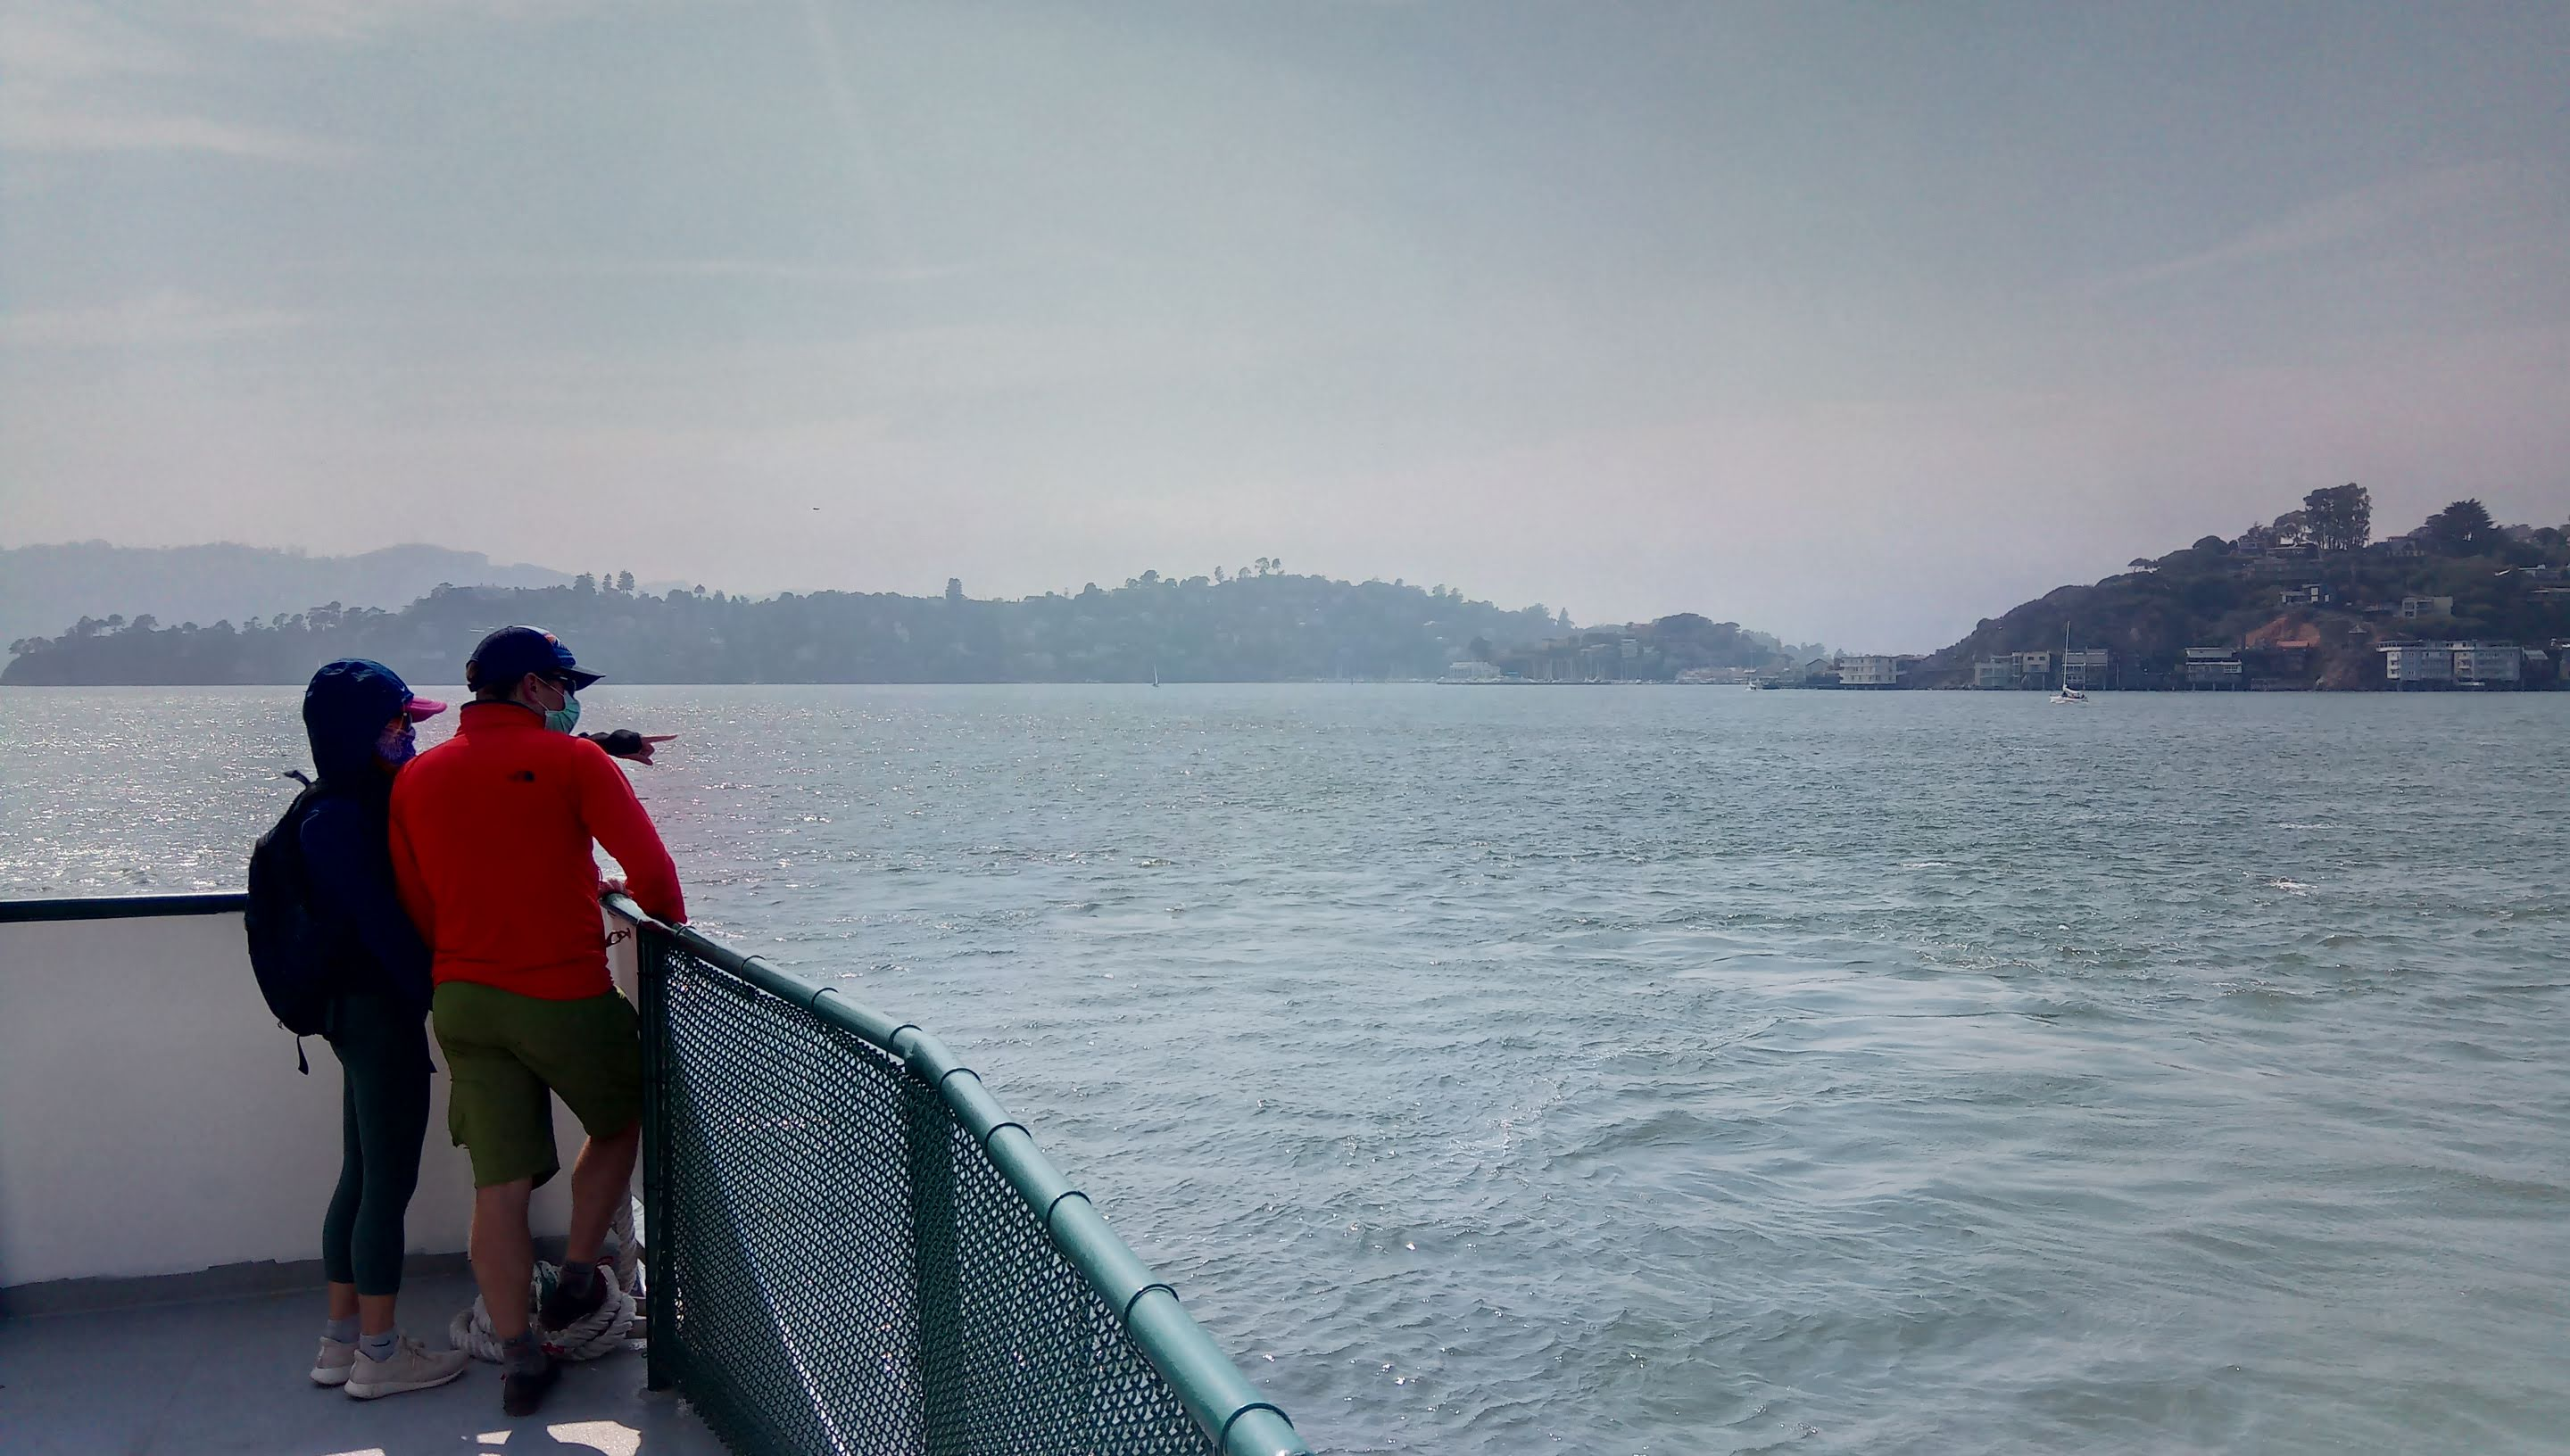 On the ferry back to Tiburon